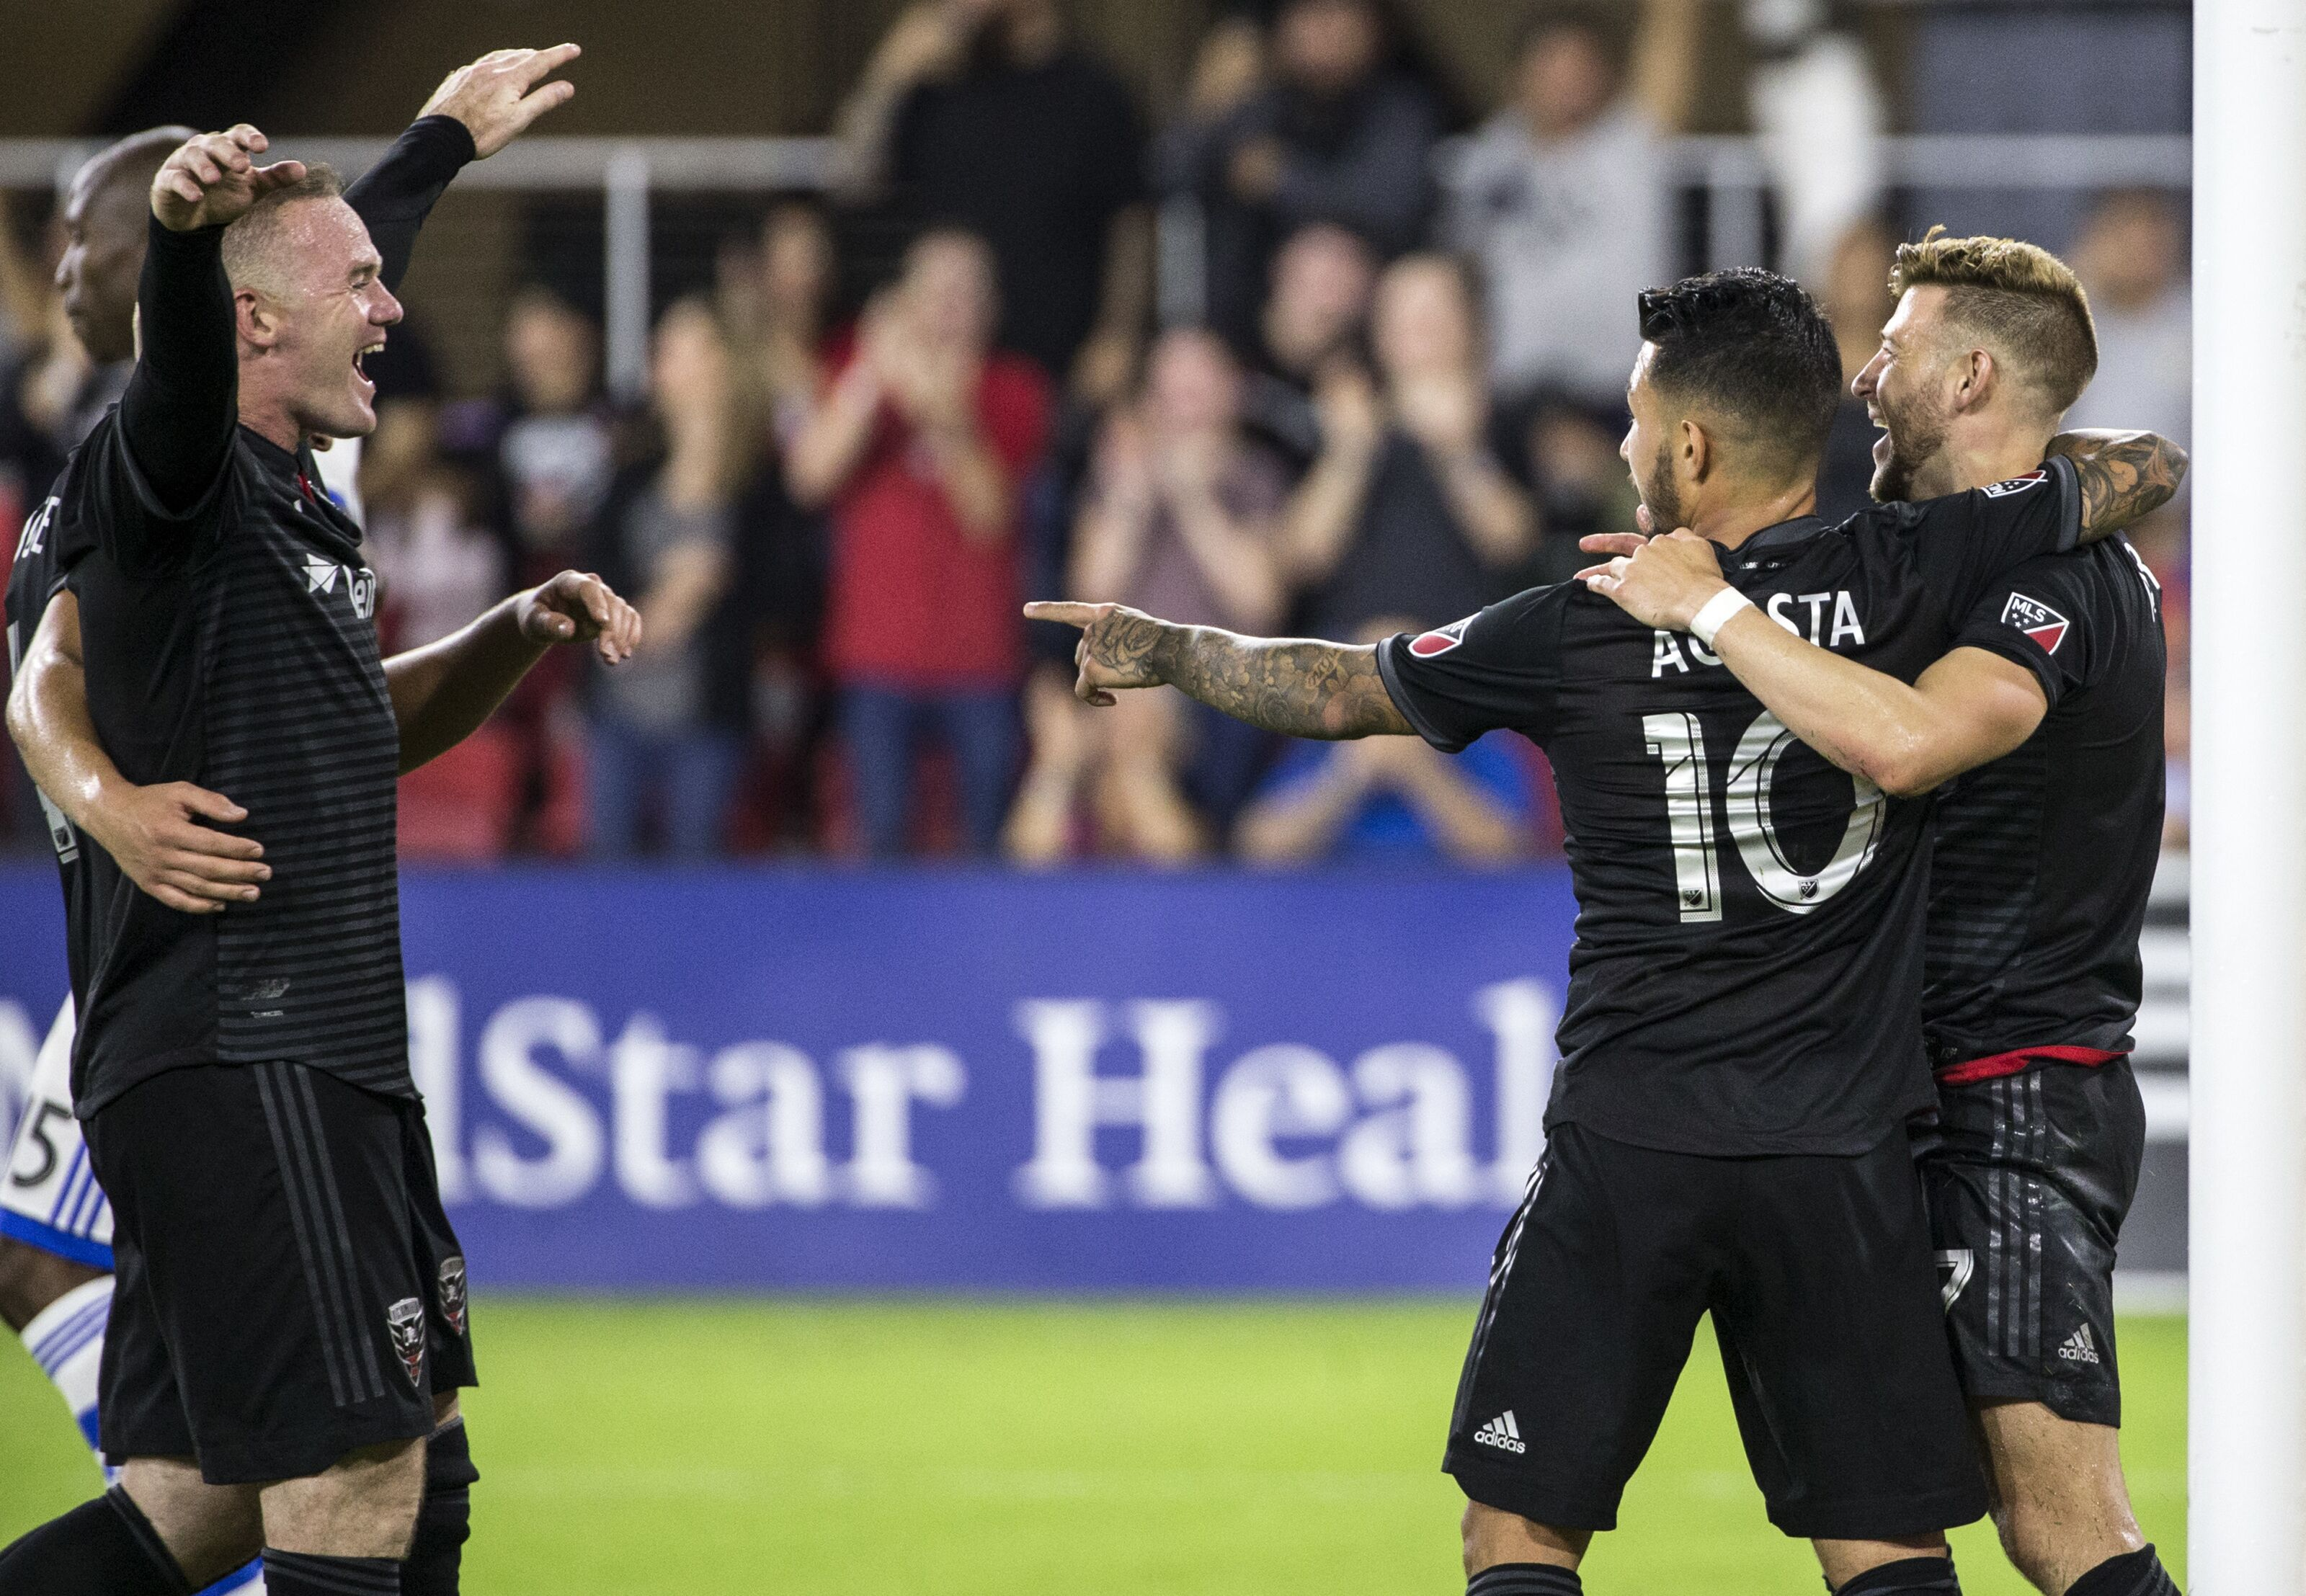 D.C. United: Wayne Rooney right about Luciano Acosta